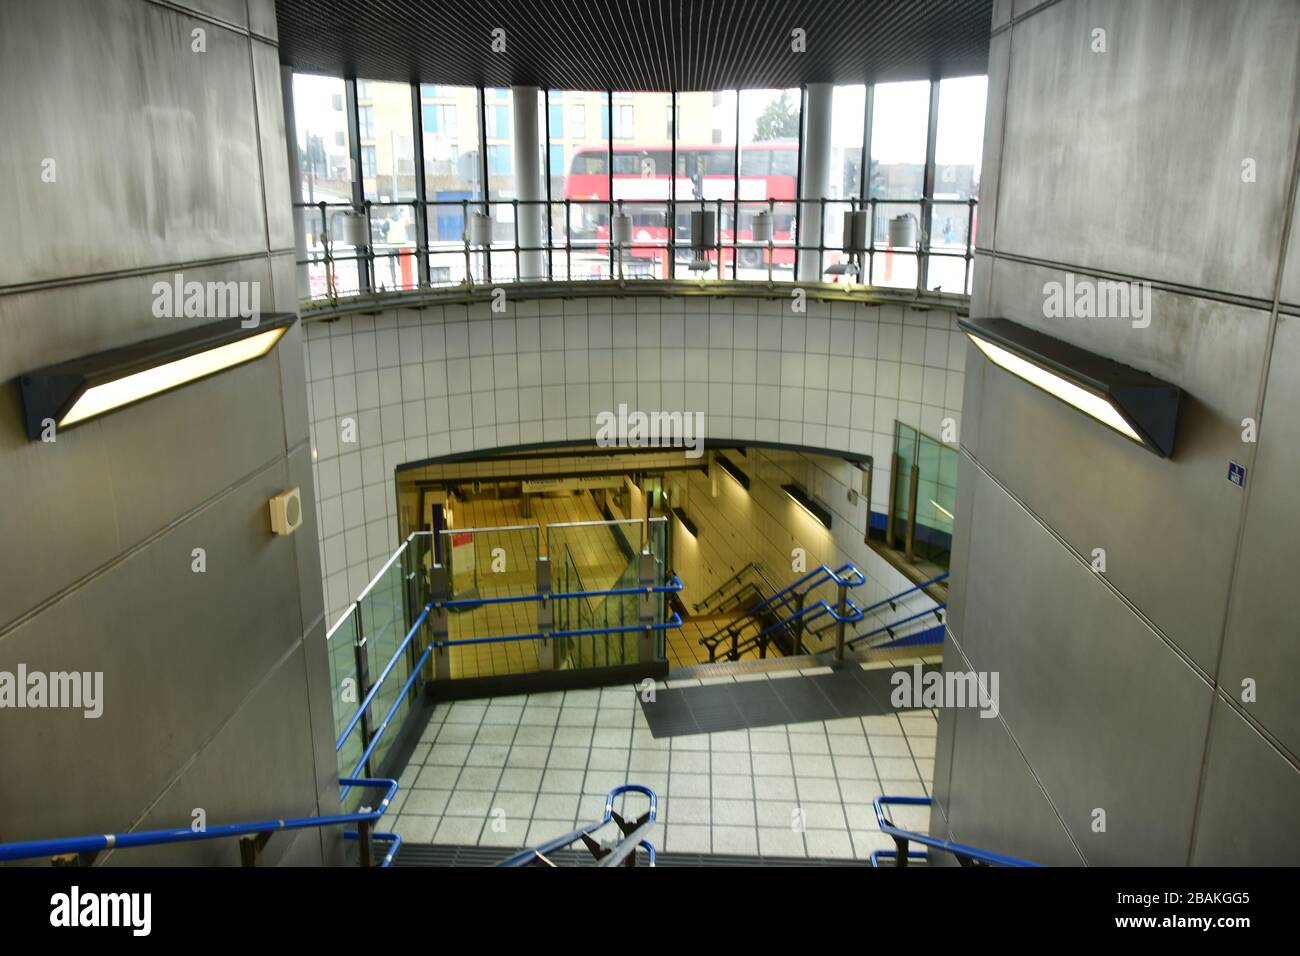 London, UK. 28th March 2020.  During the coronavirus in UK lockdown empty underground at Walthamstow Square,on 28 March 2020 London. Credit: Picture Capital/Alamy Live News Credit: Picture Capital/Alamy Live News Stock Photo